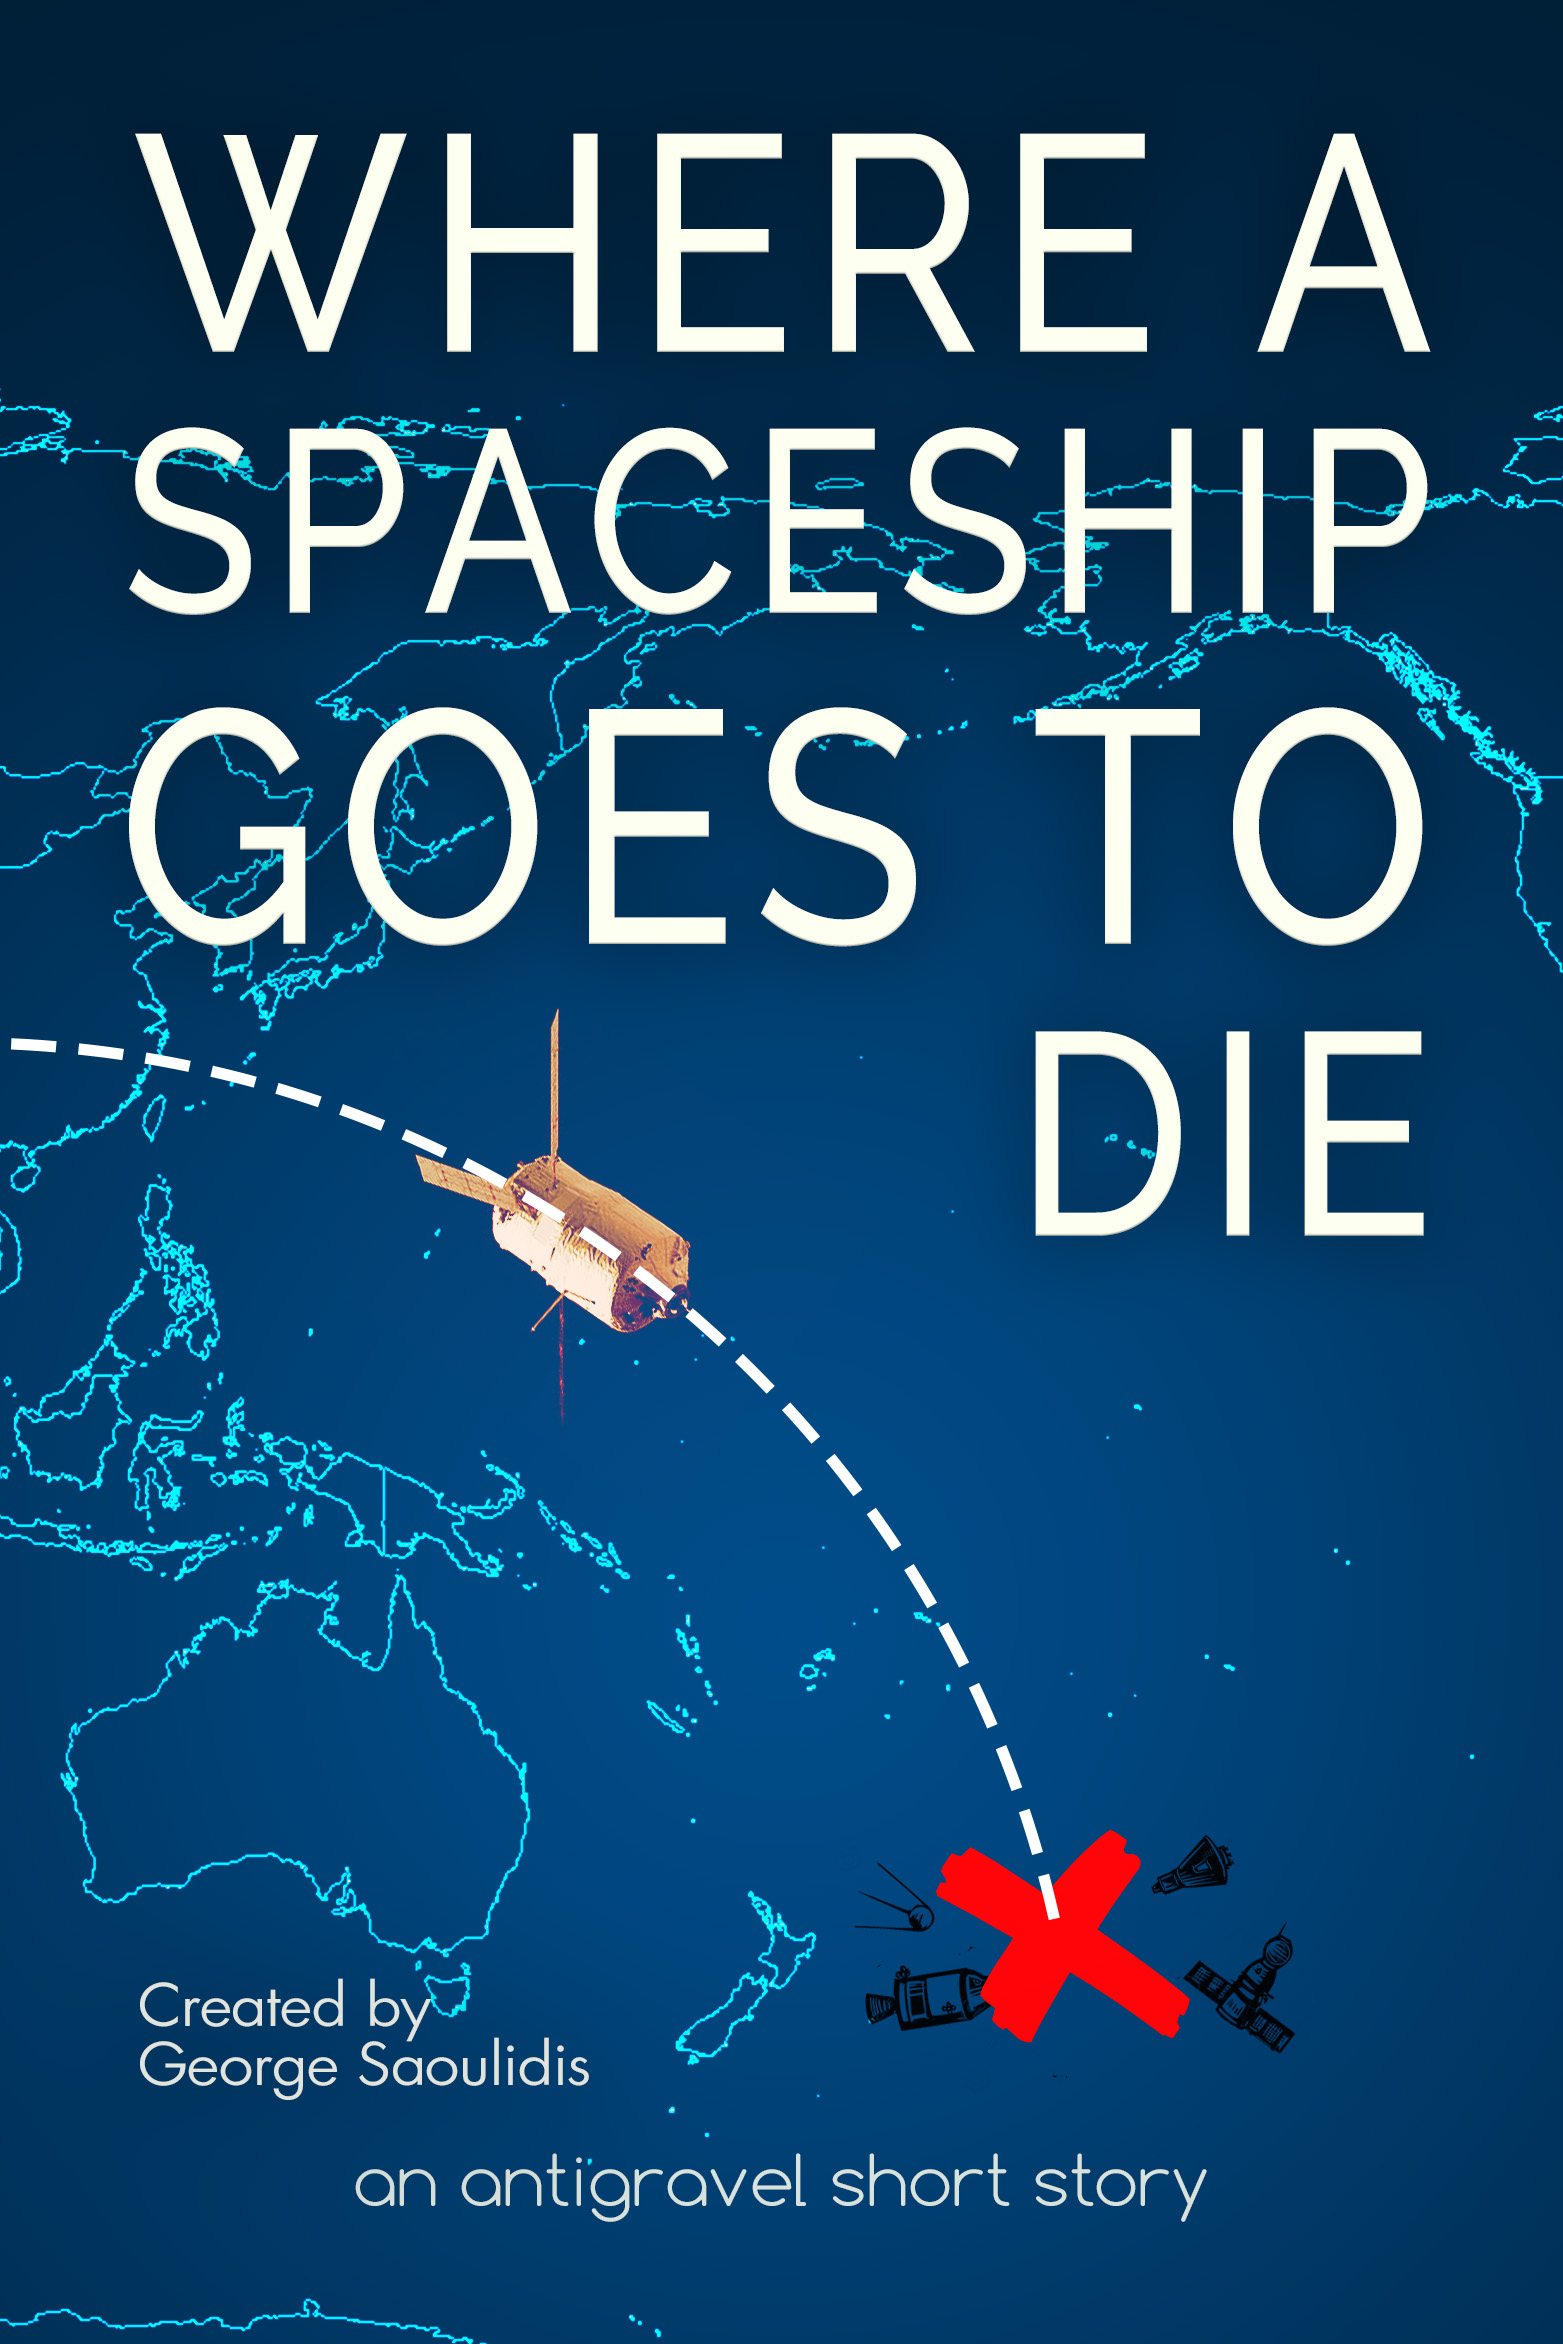 Where a spaceship goes to die